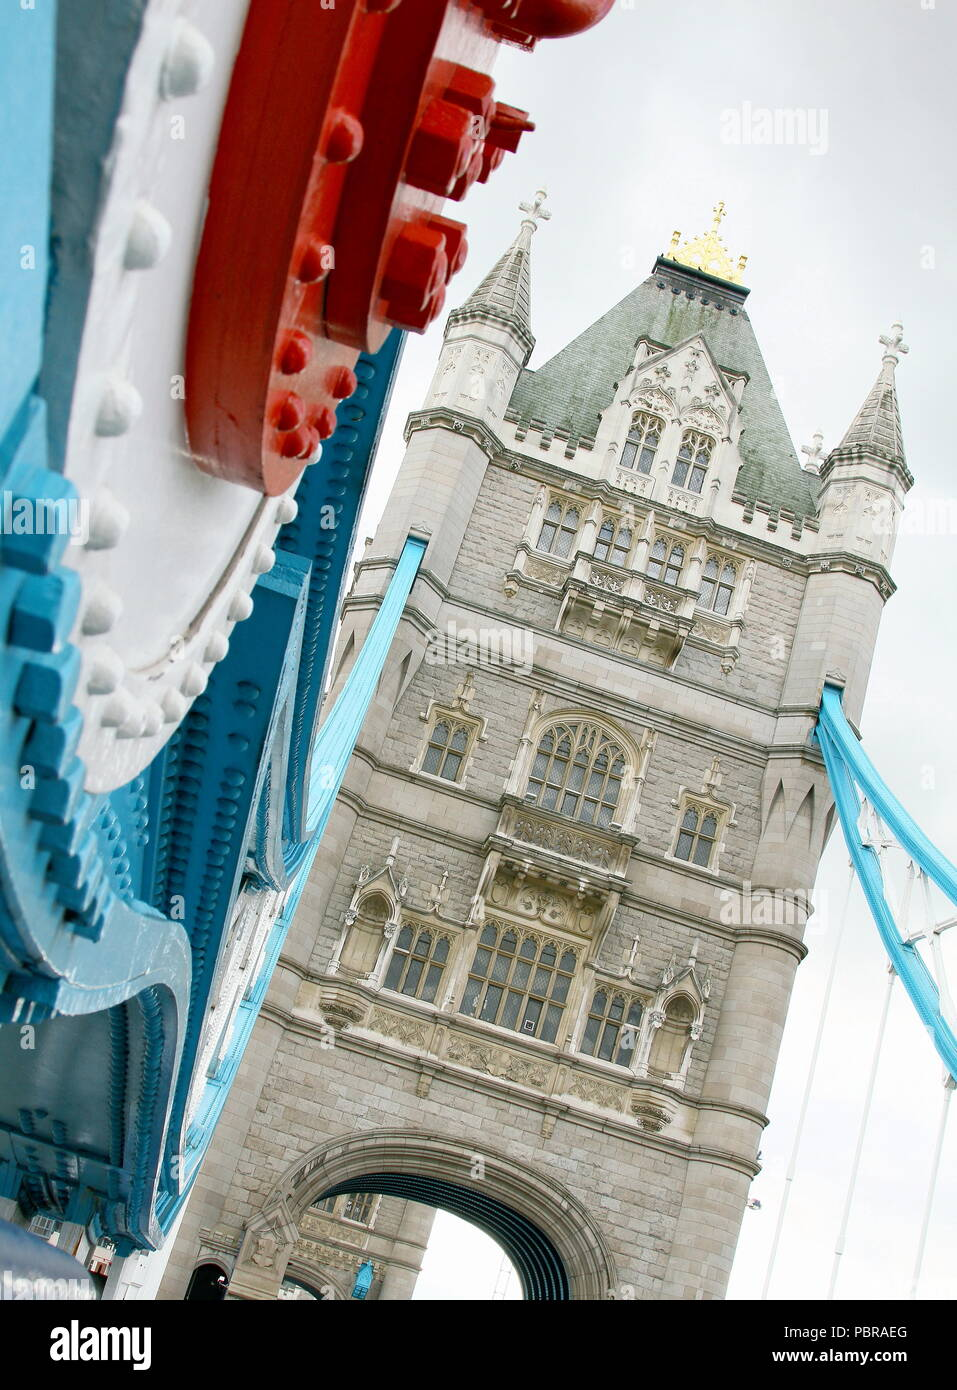 Tower Bridge London. Travel. City brake. City brakes. London sights. Historical buildings. Capital cities. - Stock Image